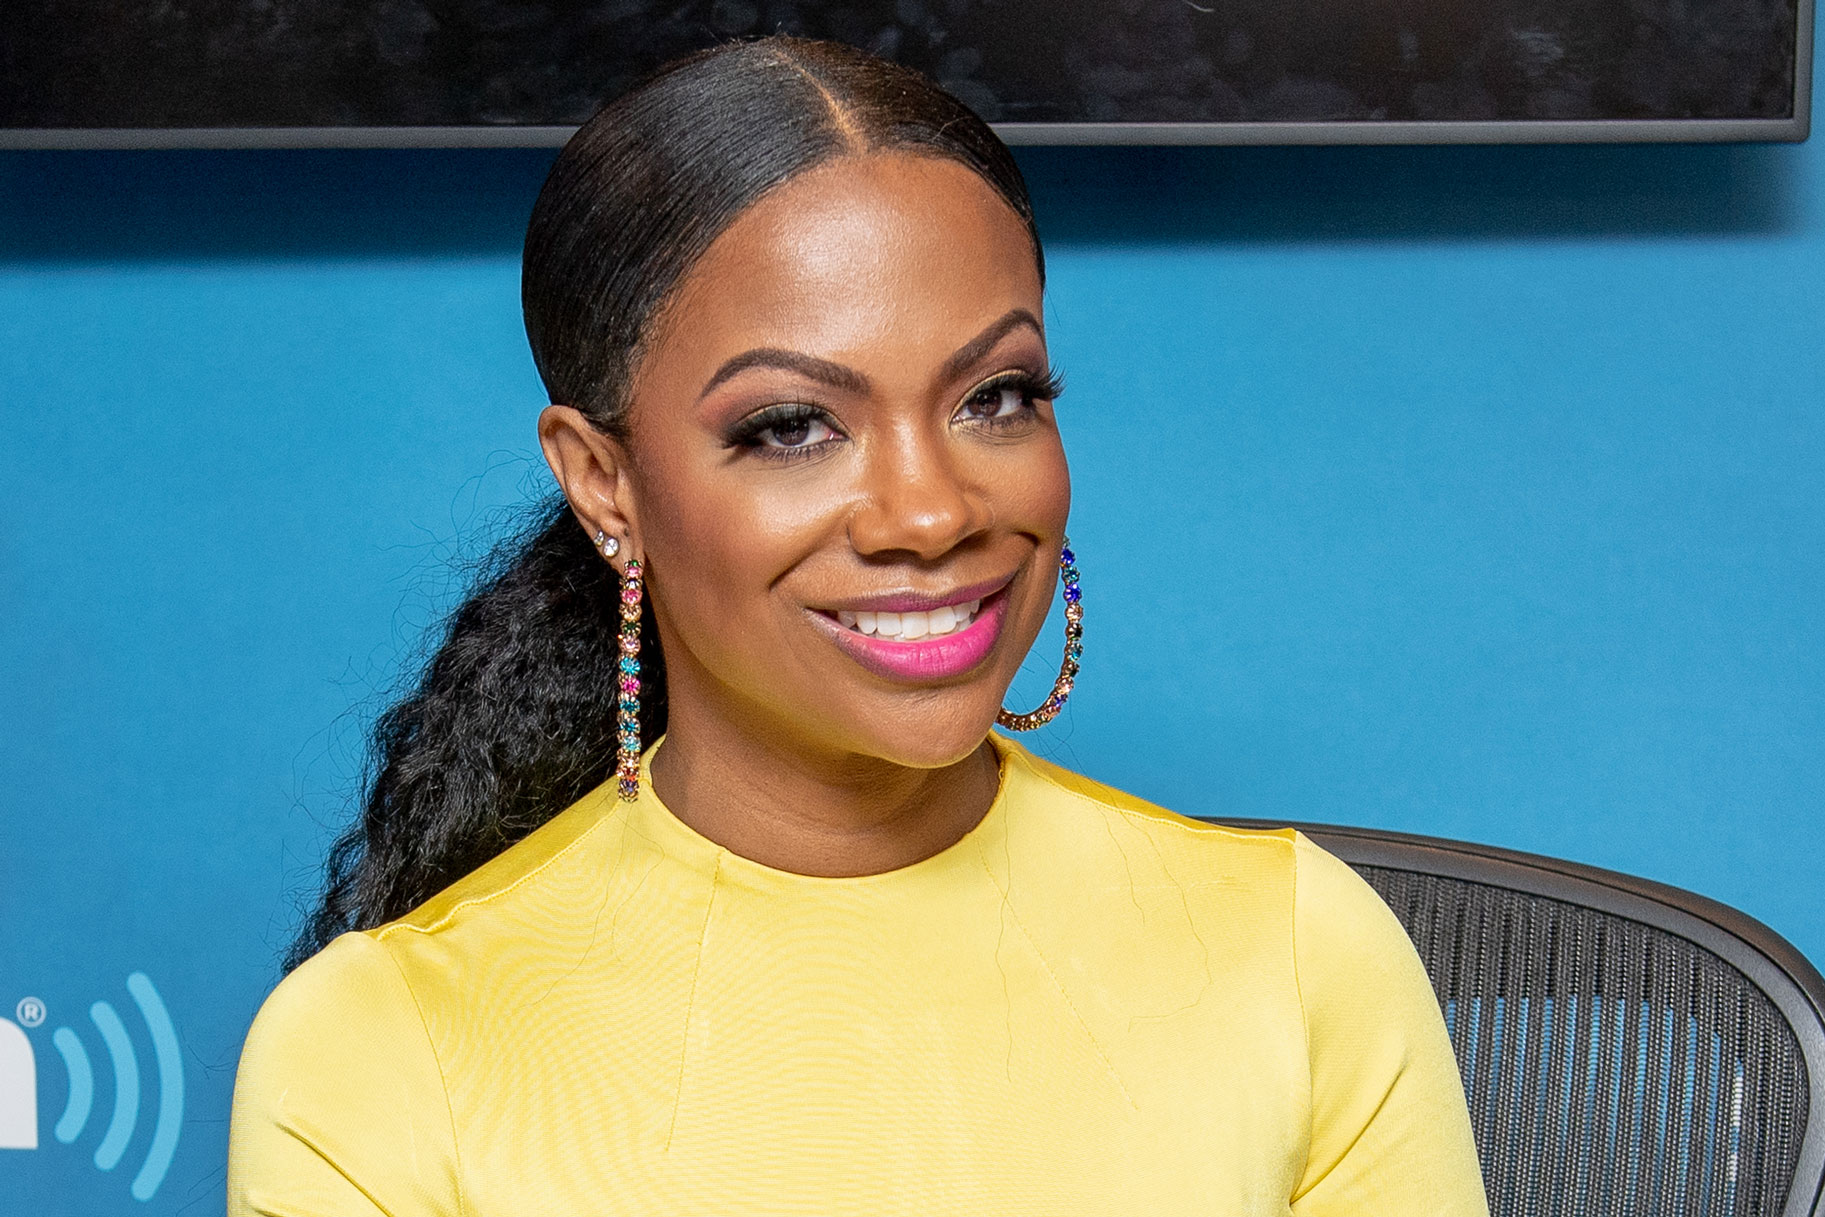 kandi-burruss-warns-fans-about-someone-impersonating-her-online